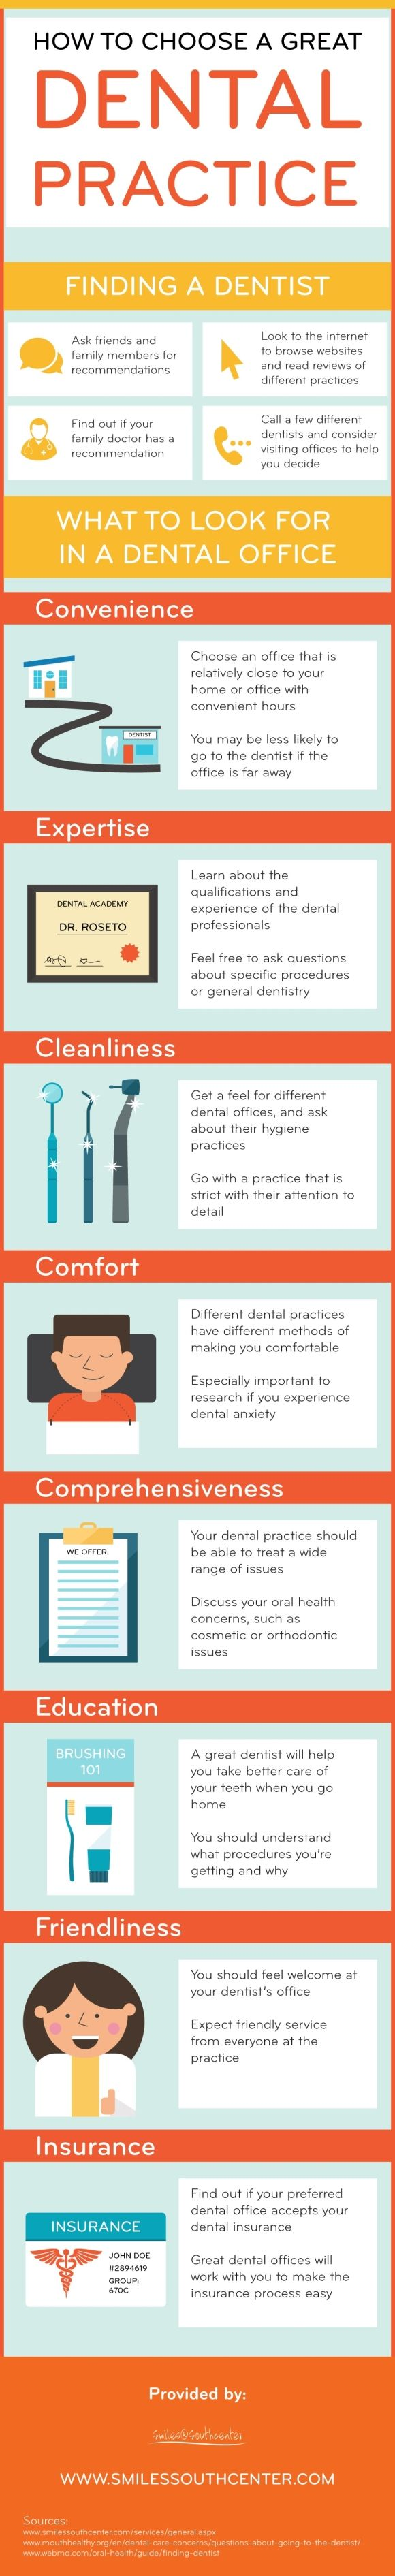 best images about dental infographics sedation you should always feel welcome at your dentist s office look for a dental practice that